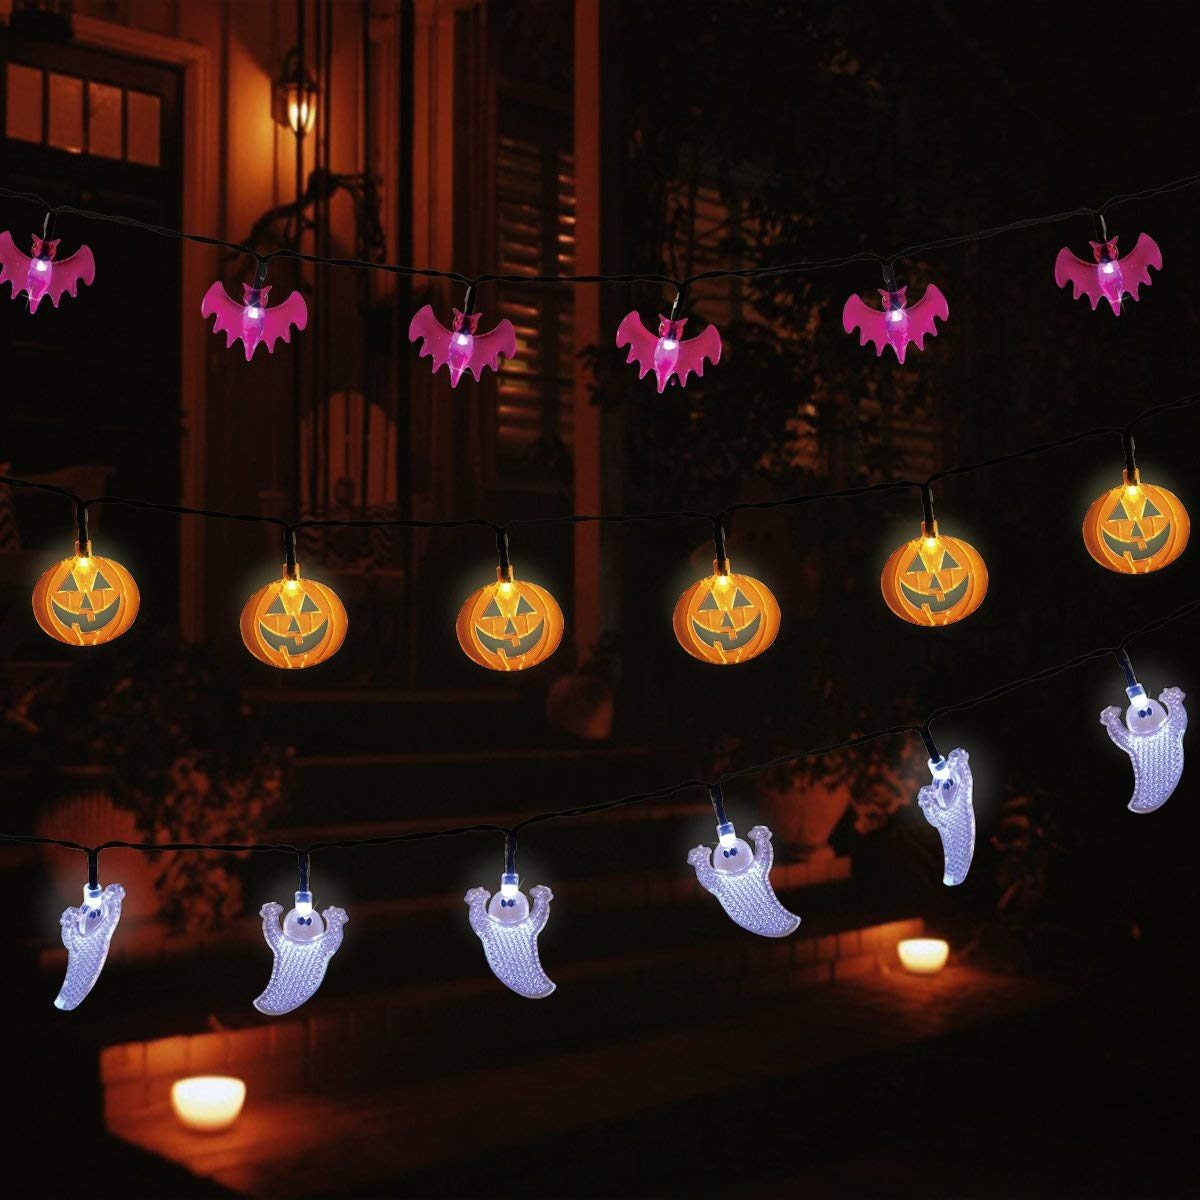 Led Halloween Lights Our Picks For The Best Halloween Decorations On Amazon Taste Of Home